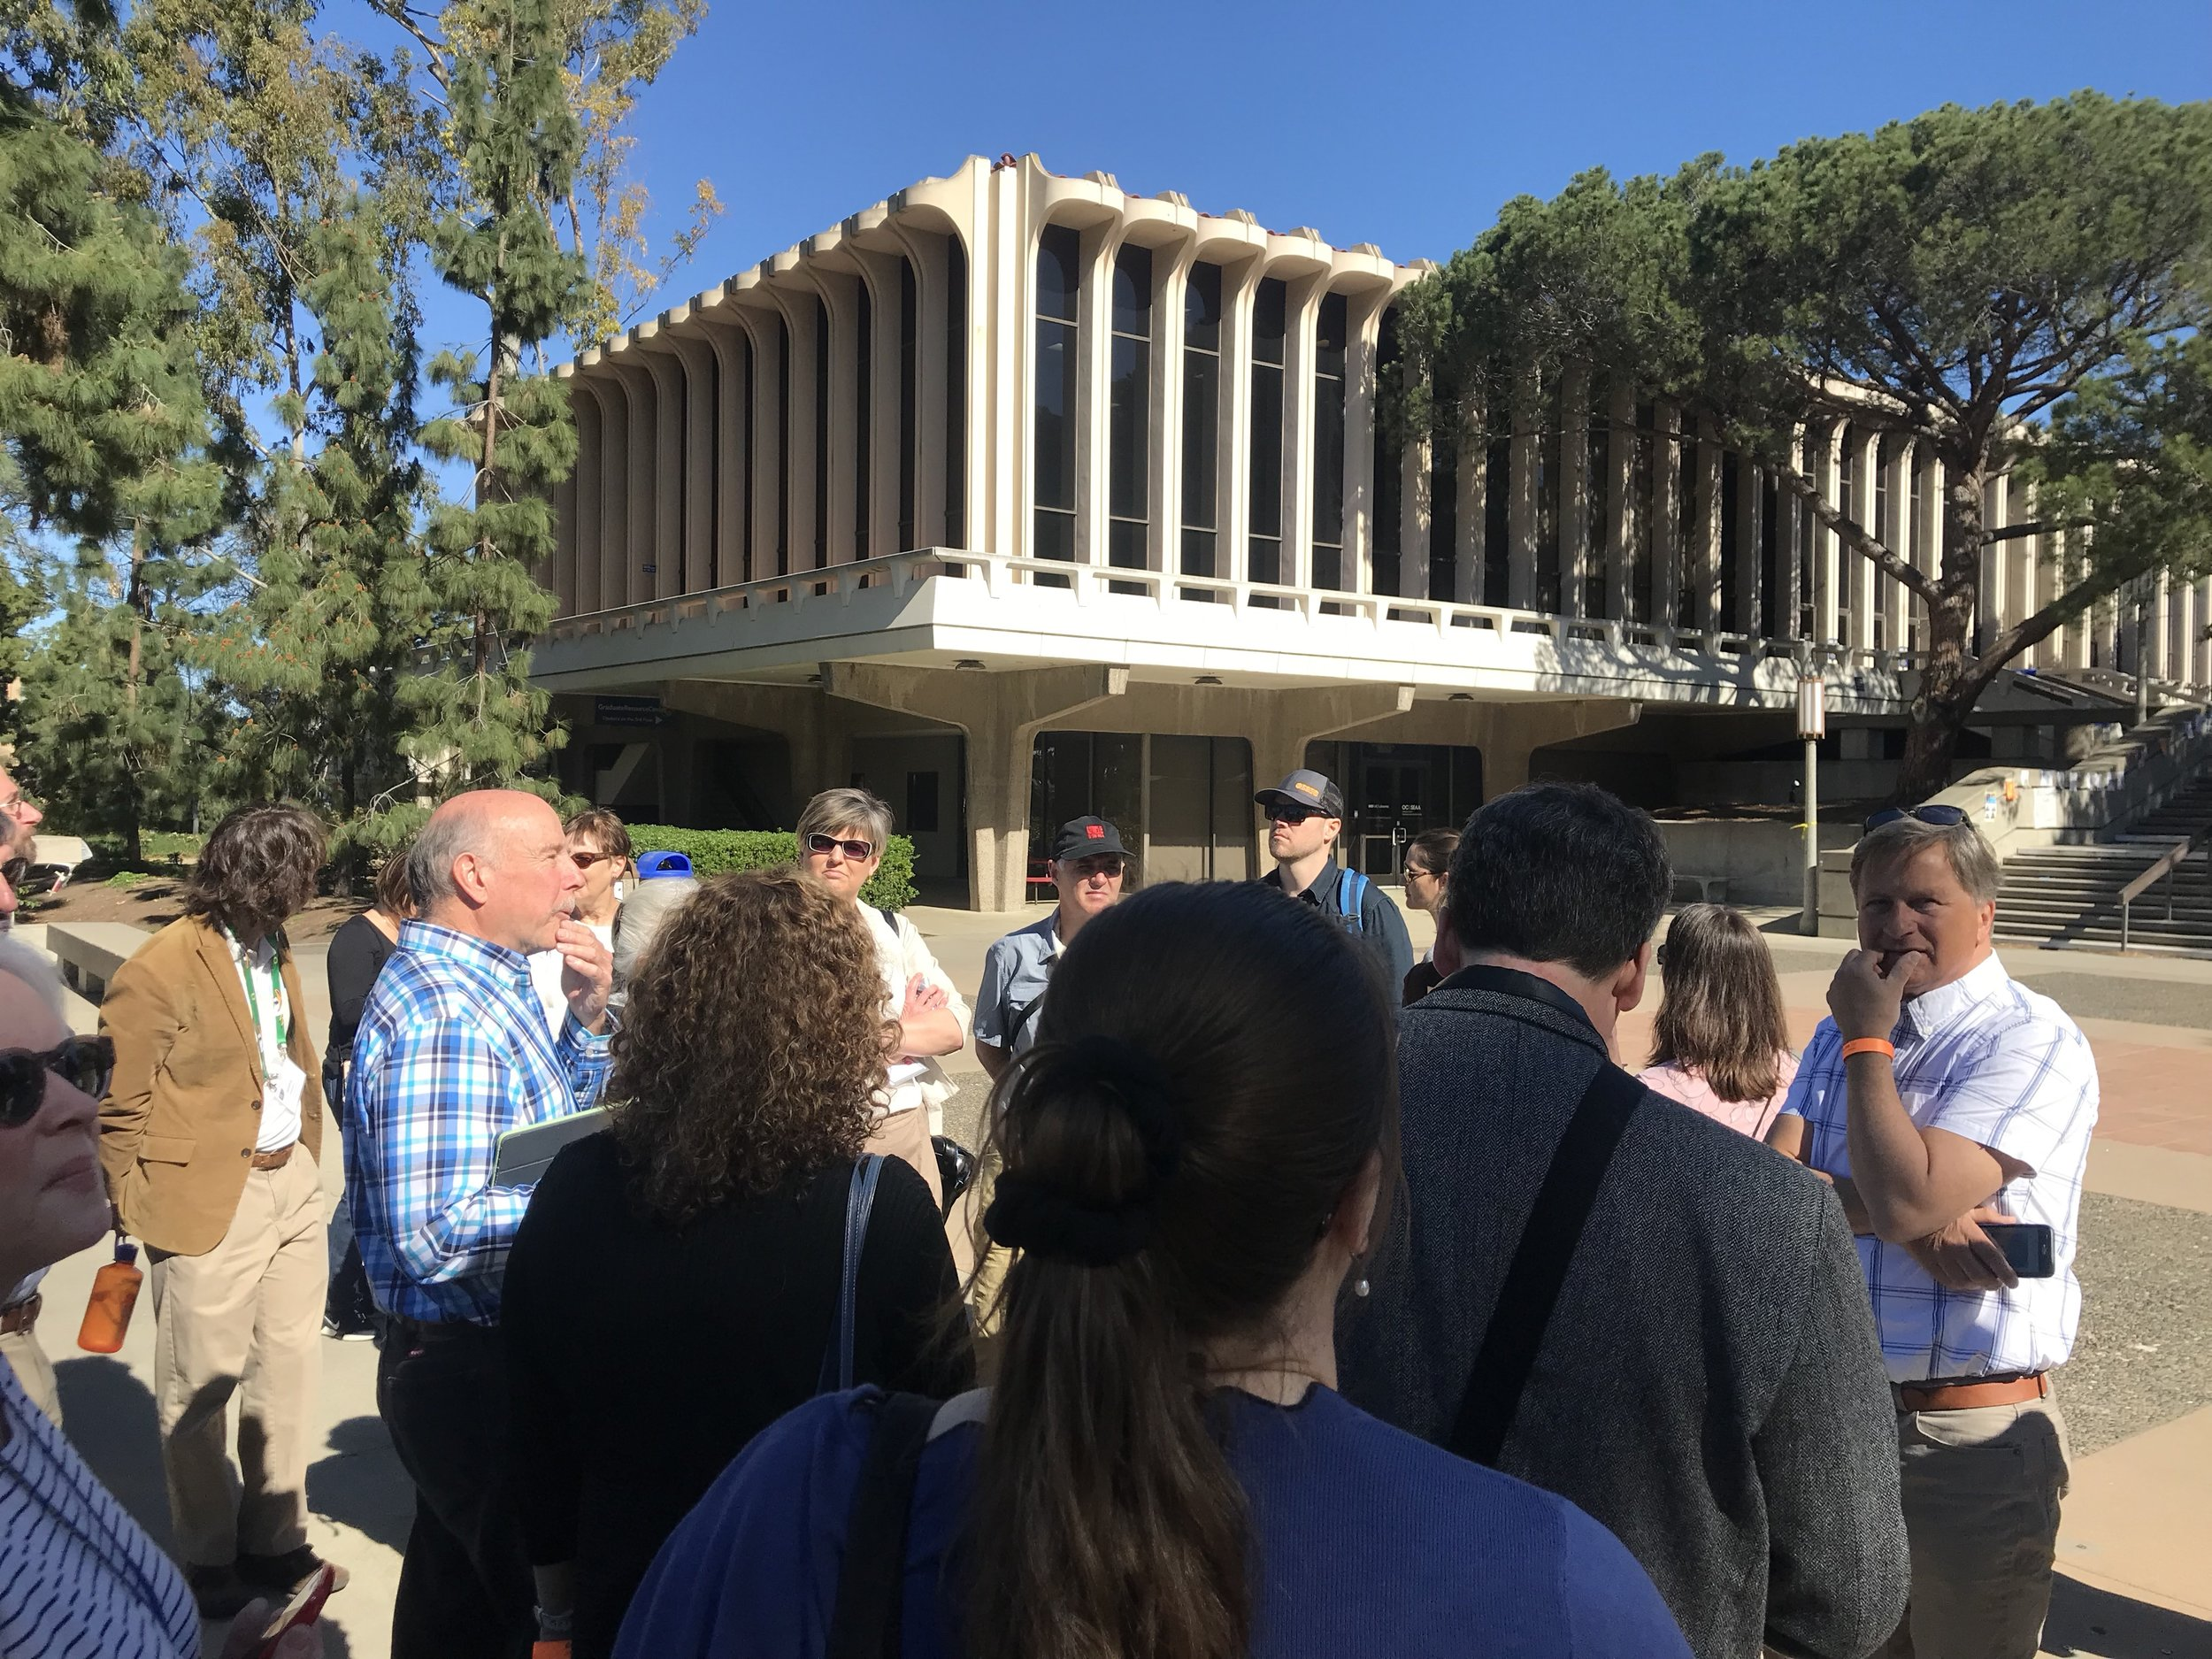 Alan Hess, conducting a tour of the buildings by William Pereira on the University of California Irvine campus, March 2019